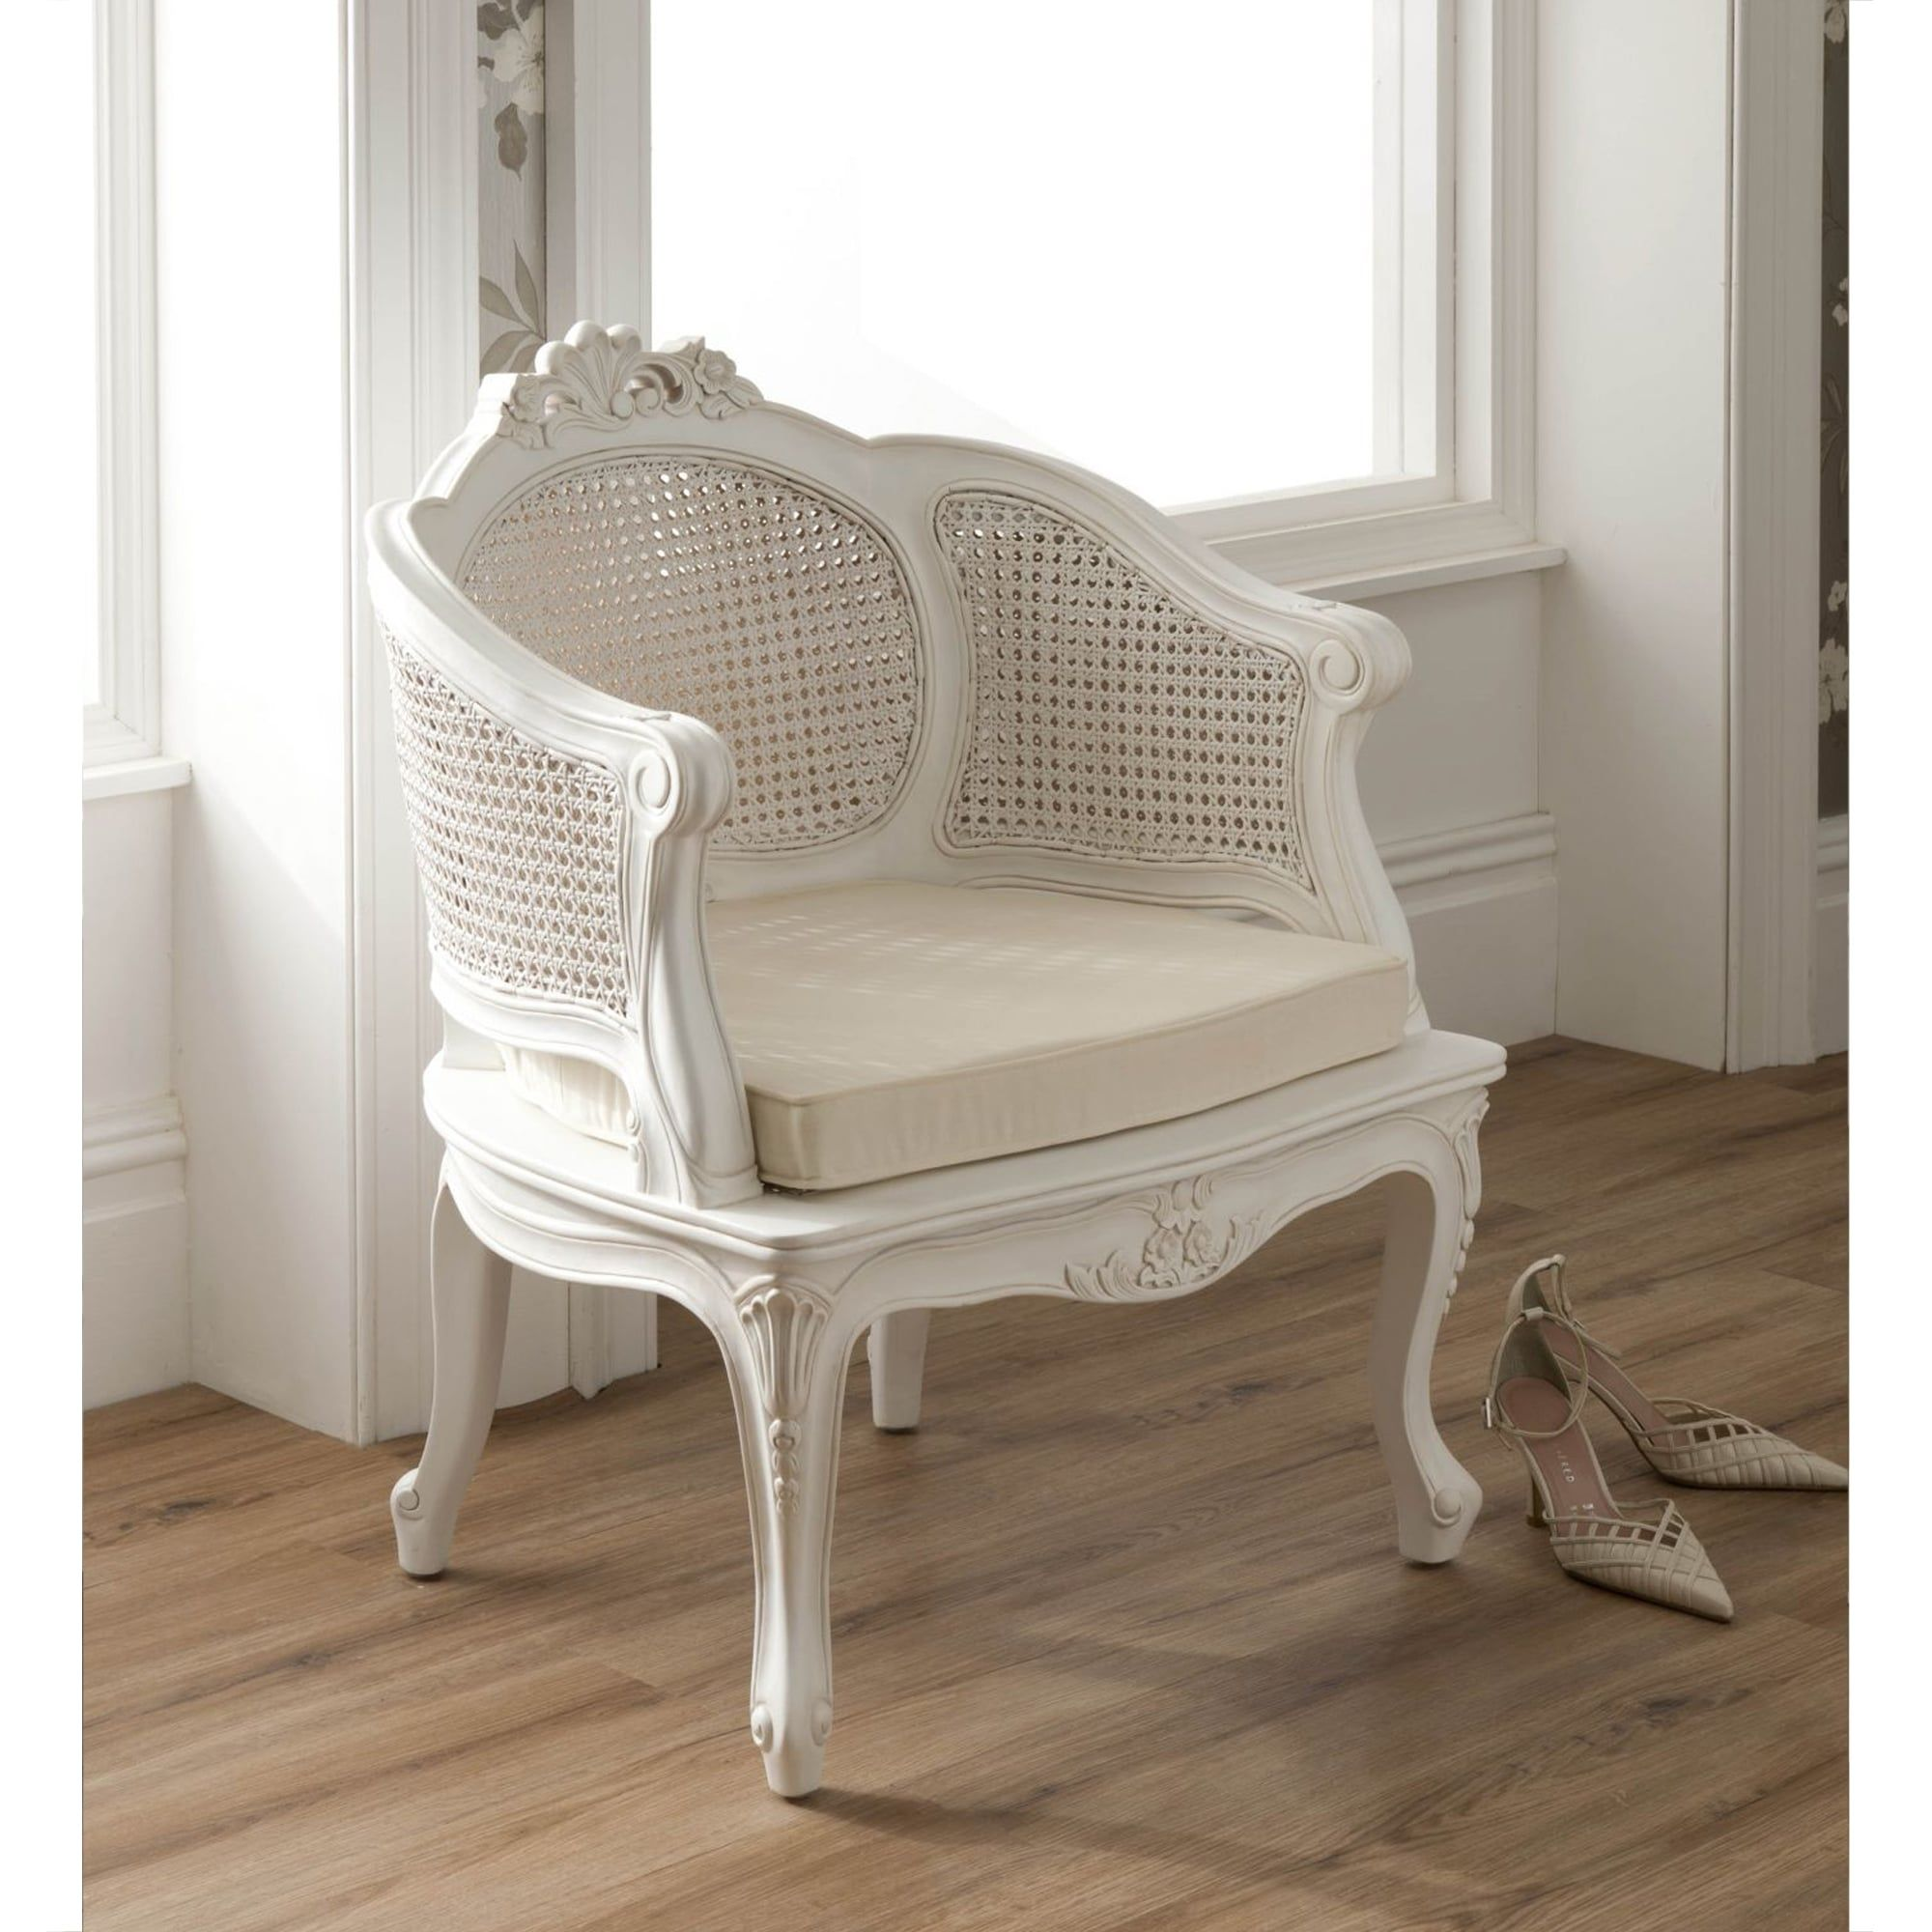 La Rochelle Antique French Style Rattan Chair Furniture